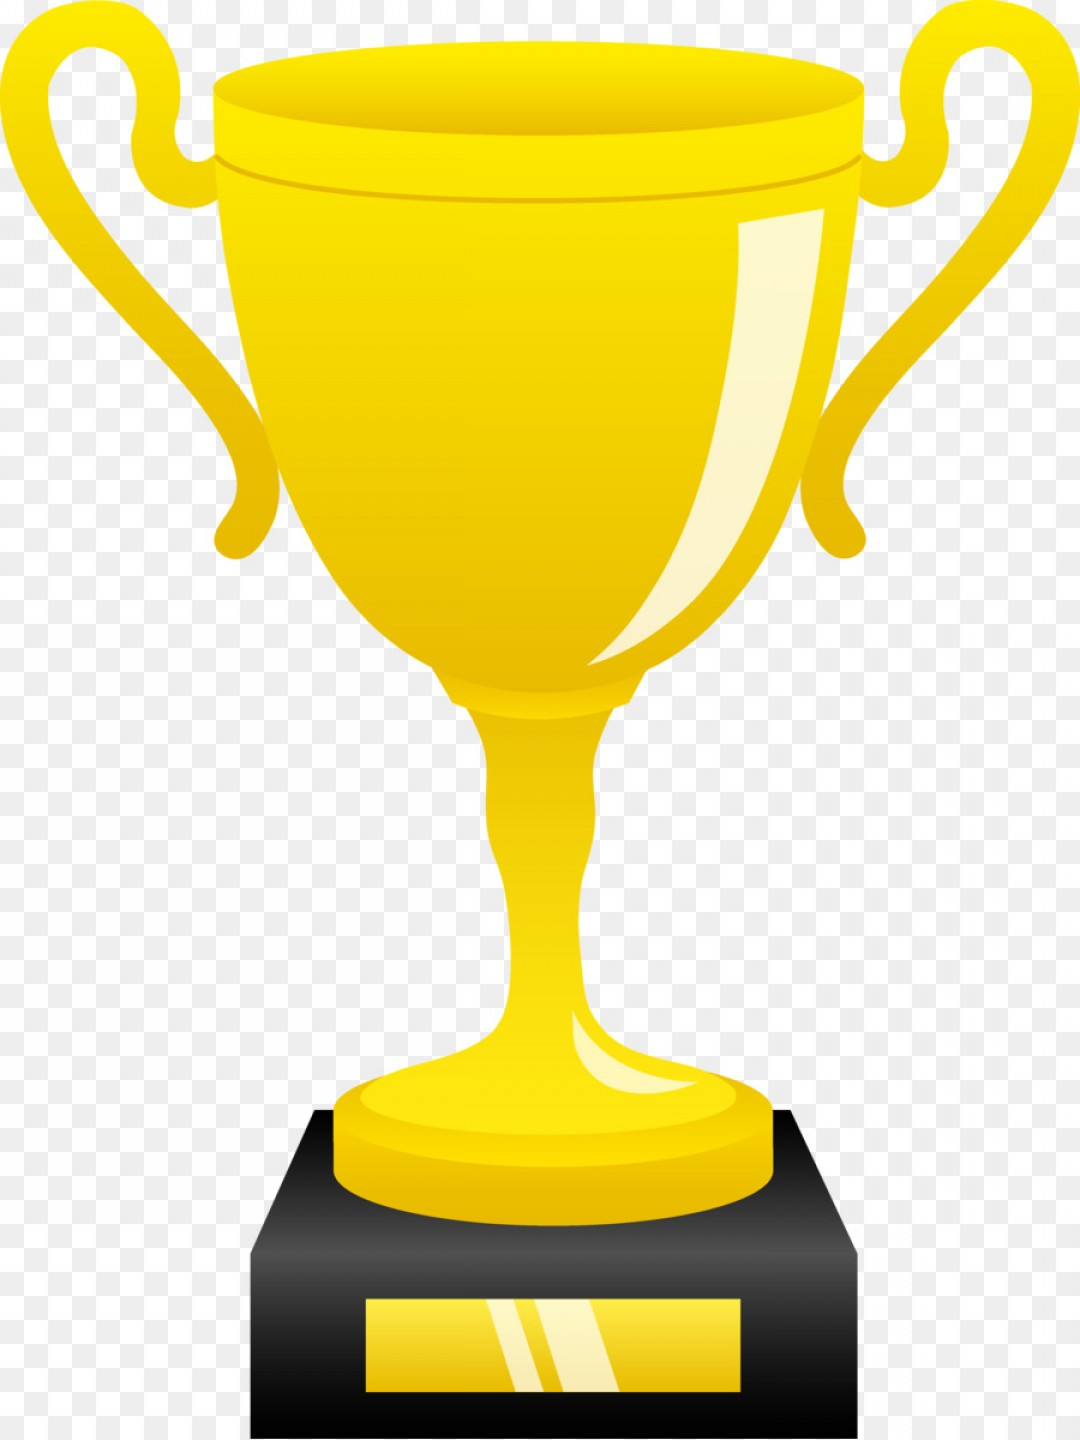 1080x1440 Png Trophy Free Content Award Clip Art Free Trophy Cli Arenawp